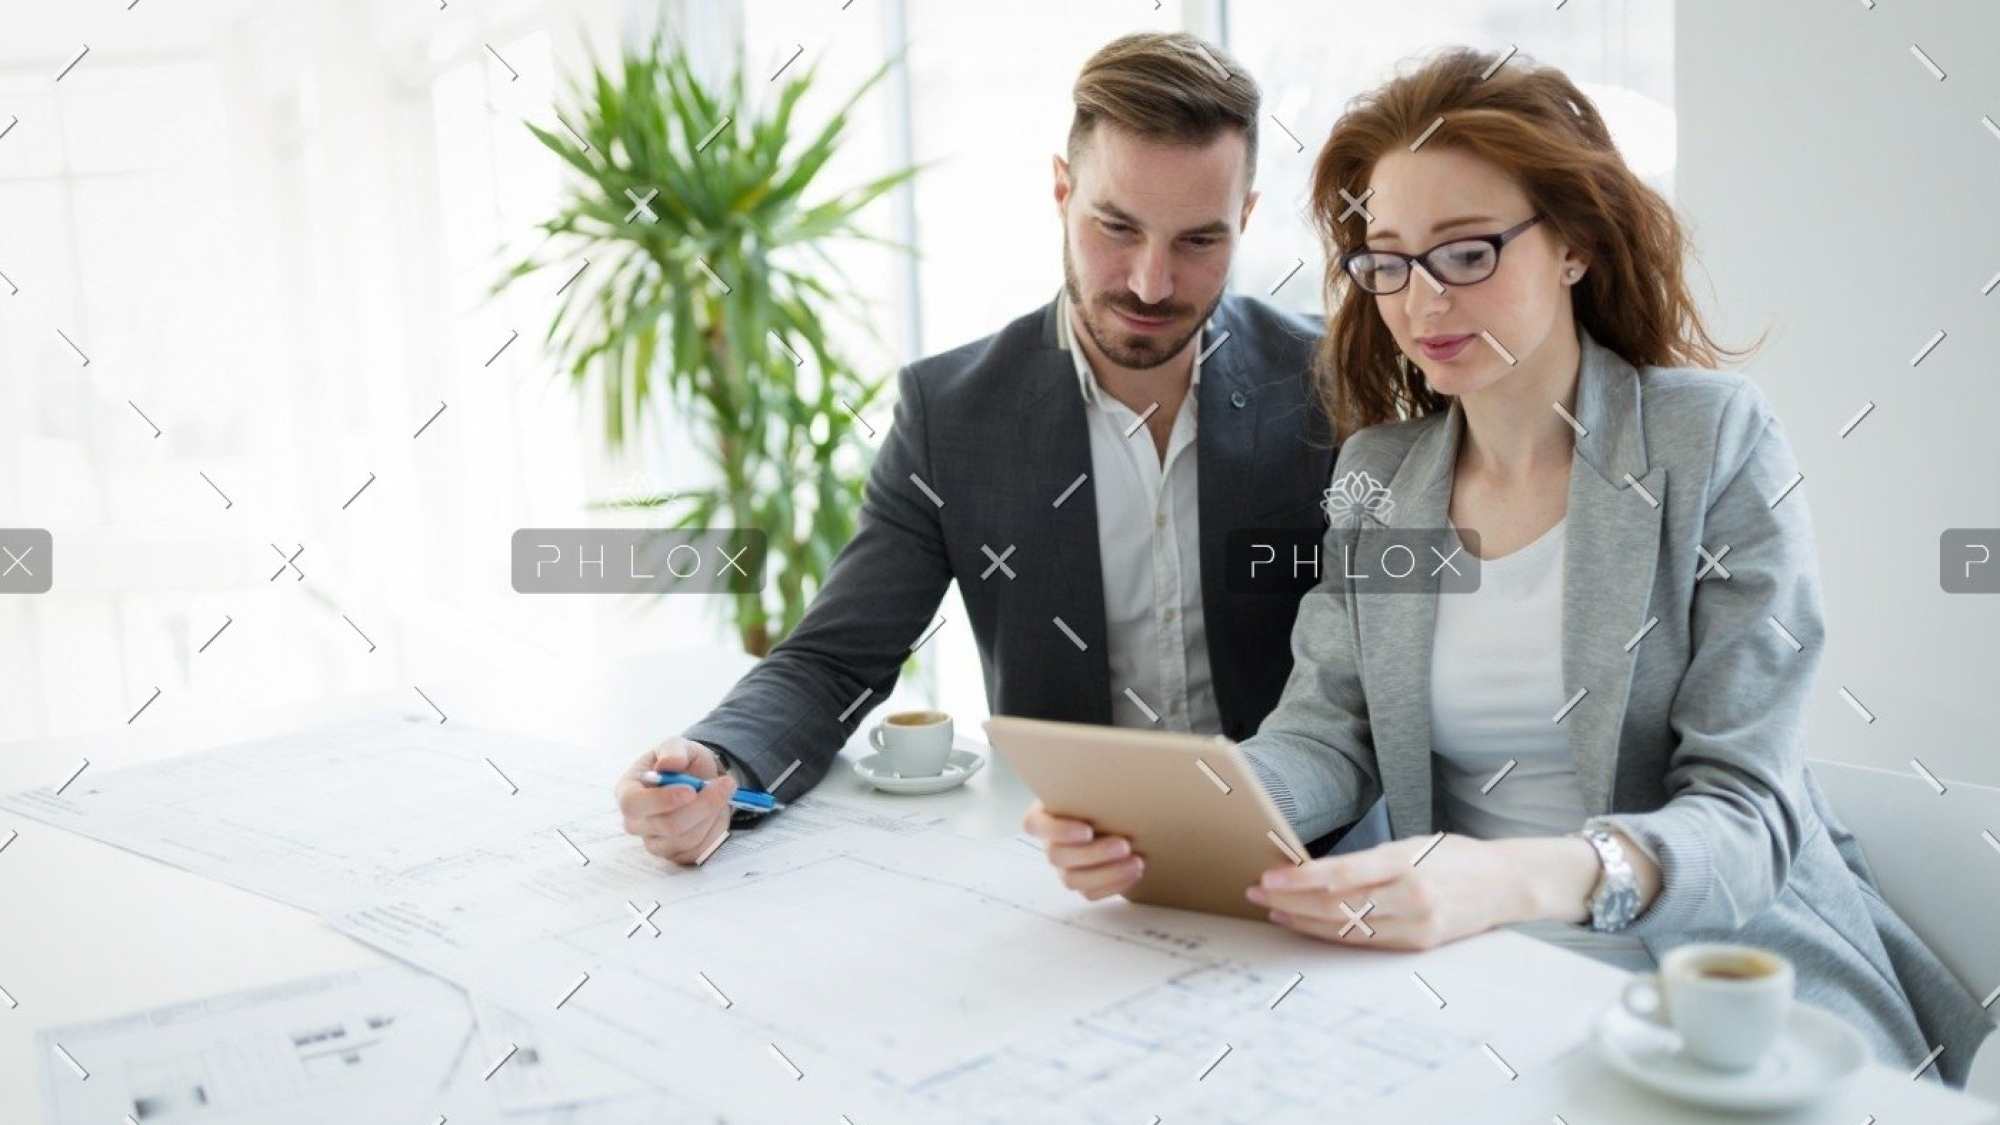 demo-attachment-596-portrait-of-young-architect-woman-on-meeting-KFZCE3A